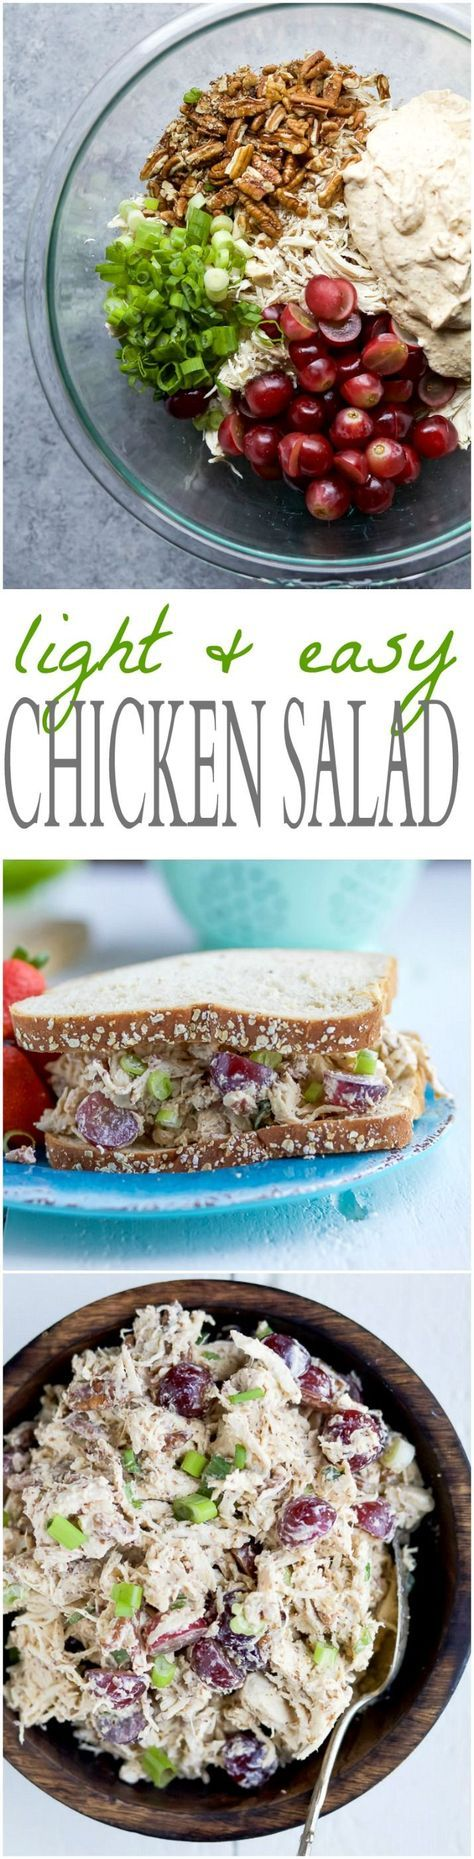 A LIGHT & EASY CHICKEN SALAD RECIPE that's low carb, high protein, and gluten free! This Chicken Salad is made with greek yogurt, mustard, grapes, and fresh lemon juice. Perfect for a quick lunch! | http://joyfulhealthyeats.com